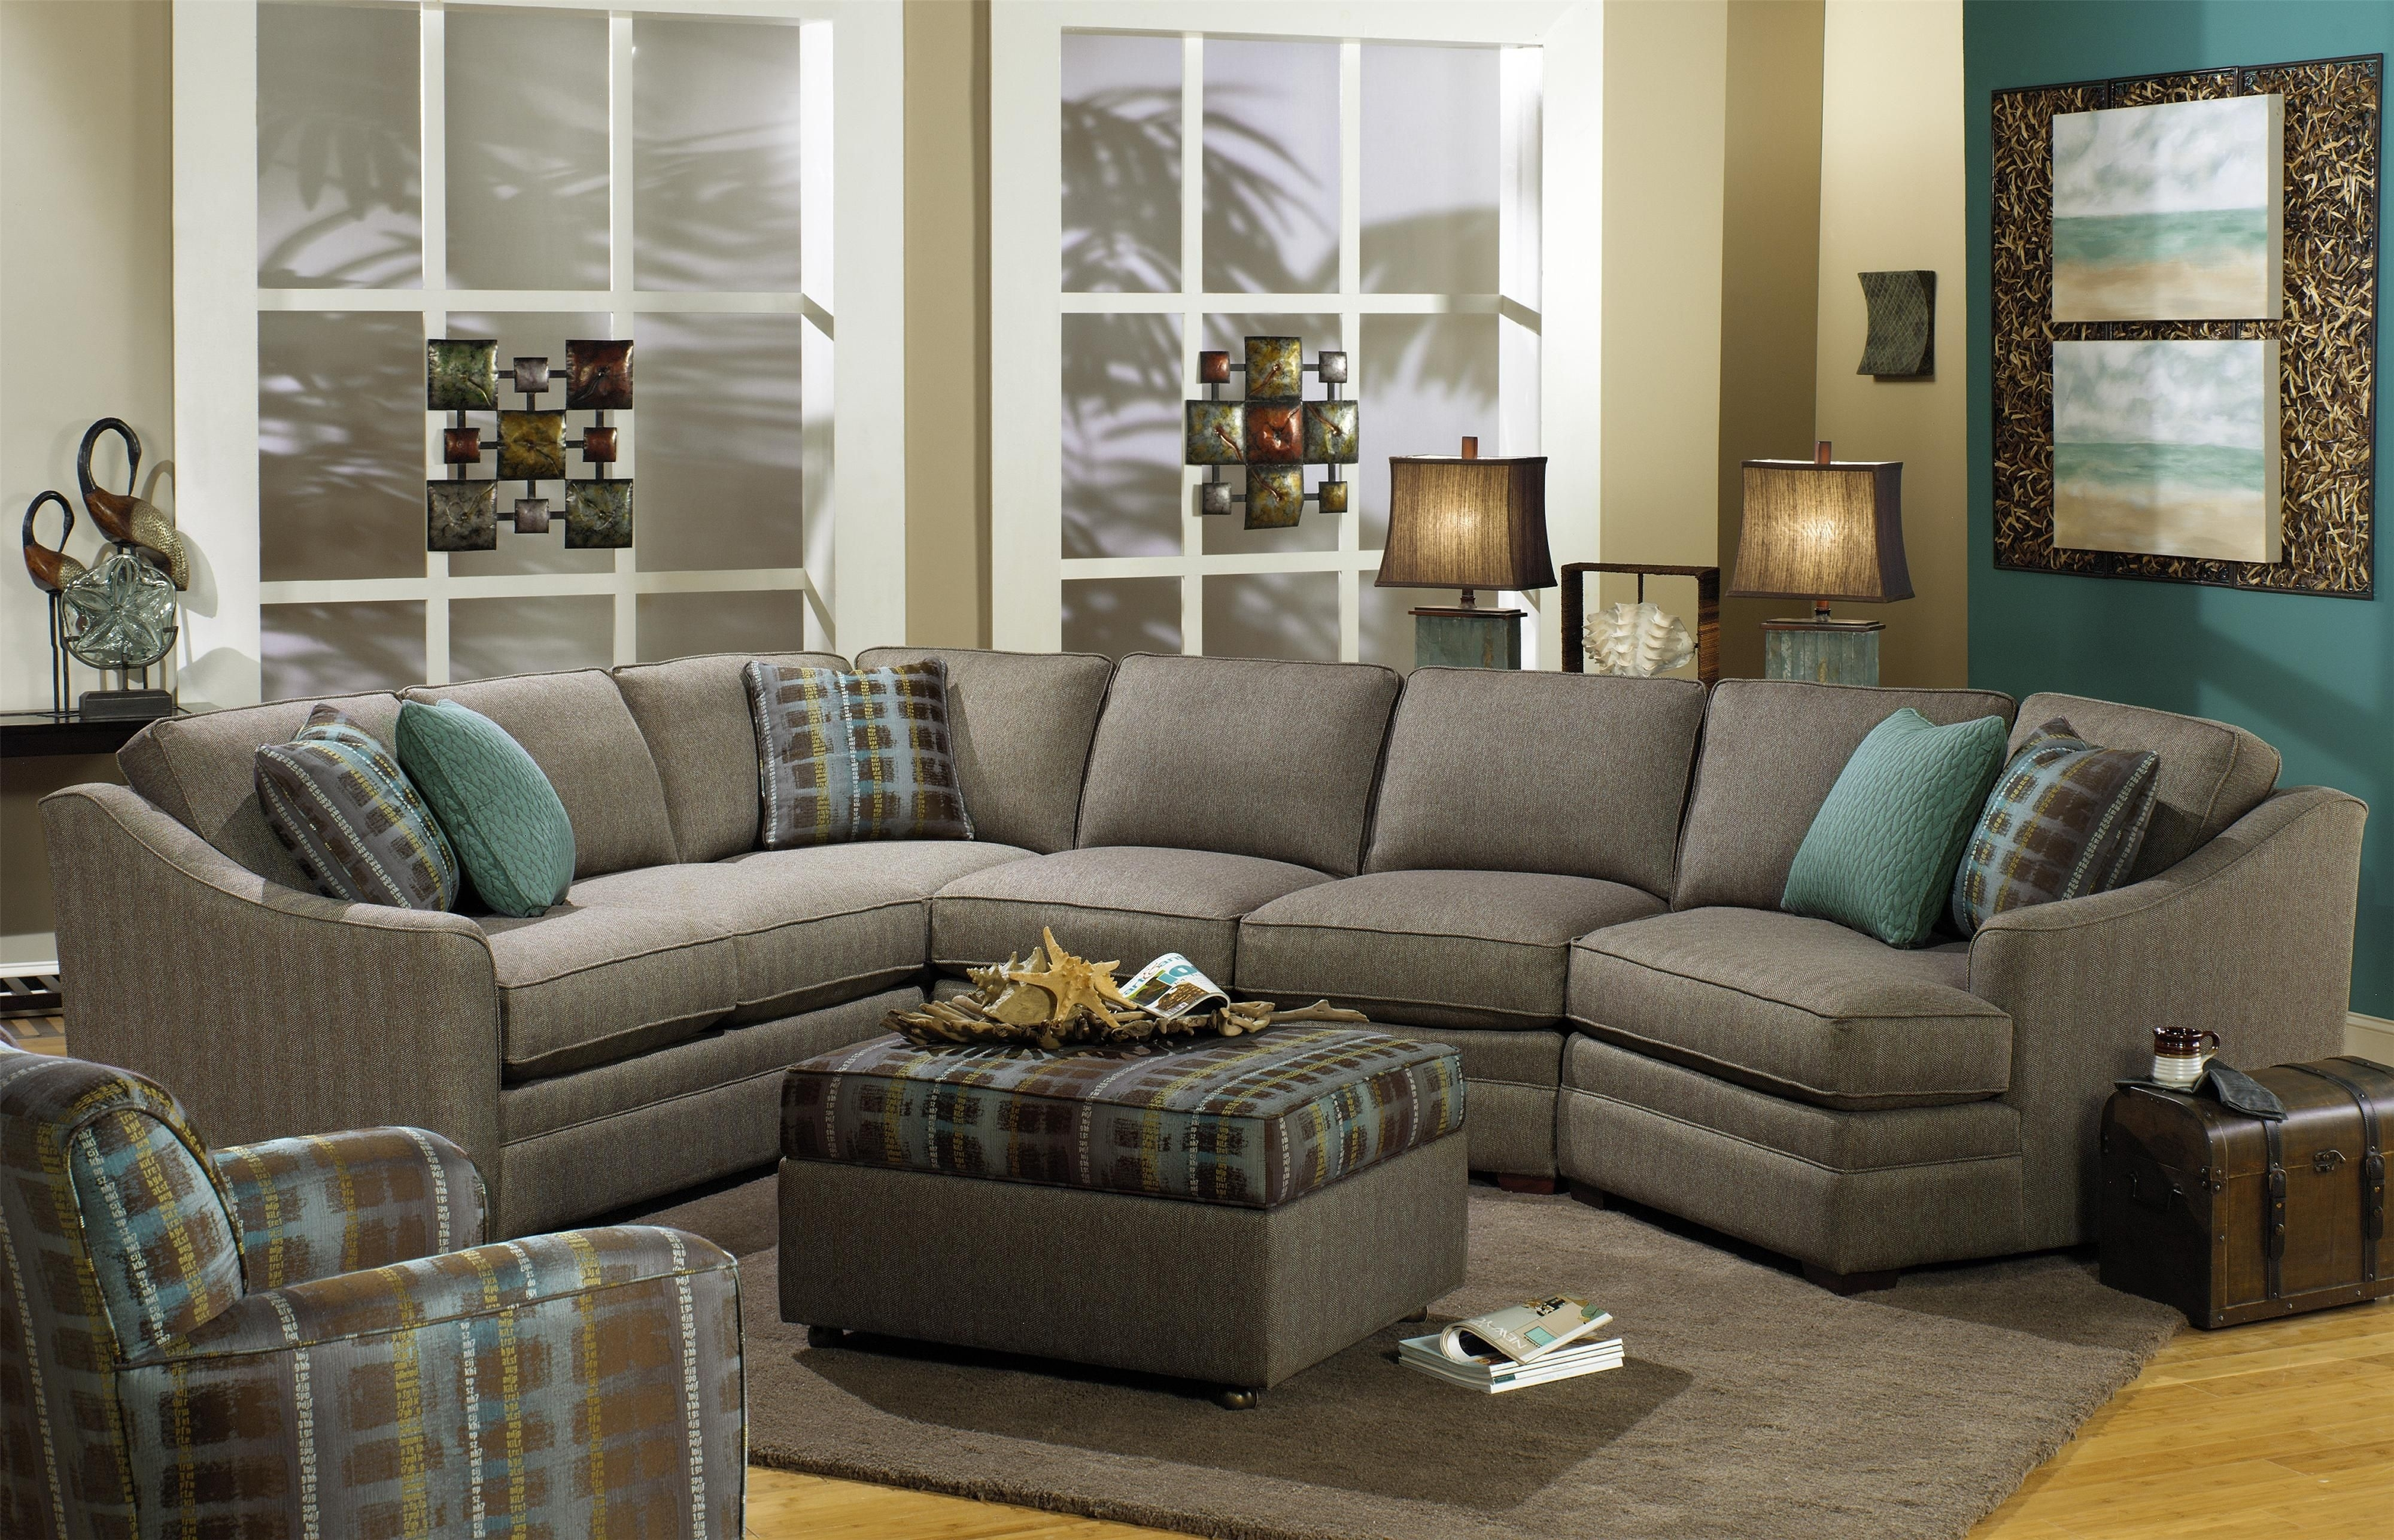 F9 Custom Collection Customizable 3 Piece Sectional With Laf Cuddler In Virginia Sectional Sofas (View 8 of 10)